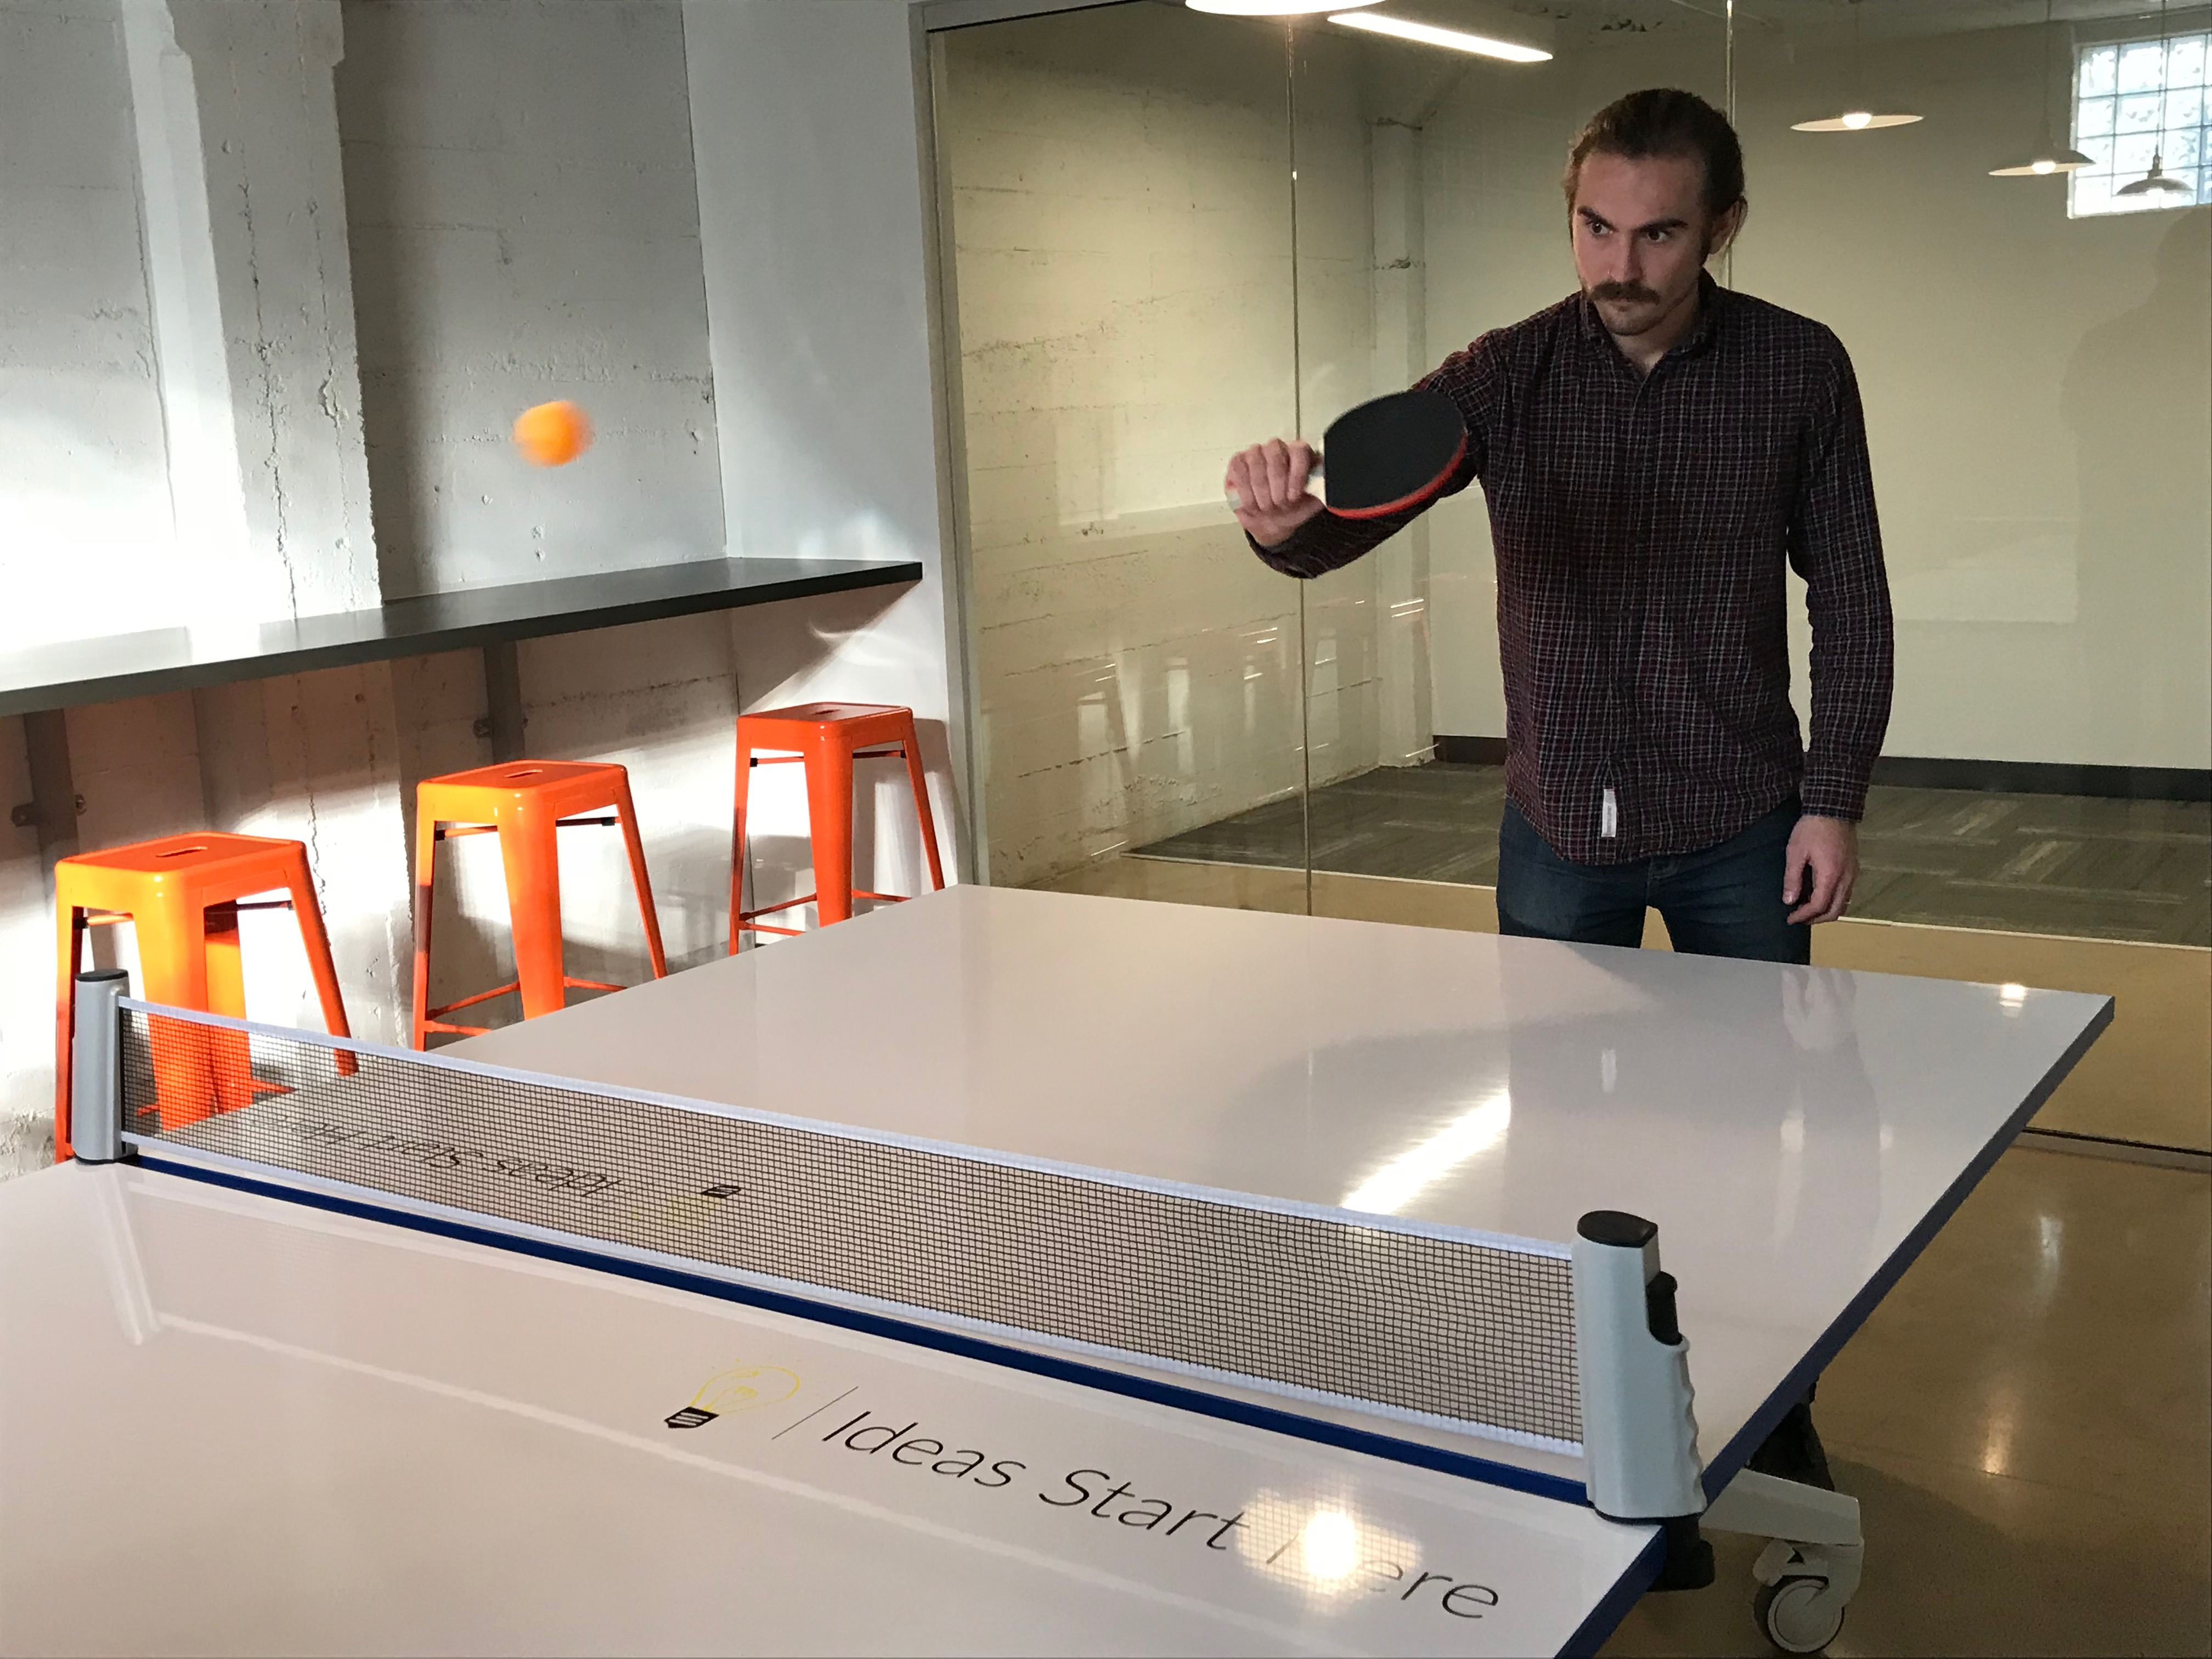 A male employee serves the ping pong ball in a room at STC's renovated warehouse in downtown Phoenix, Arizona.